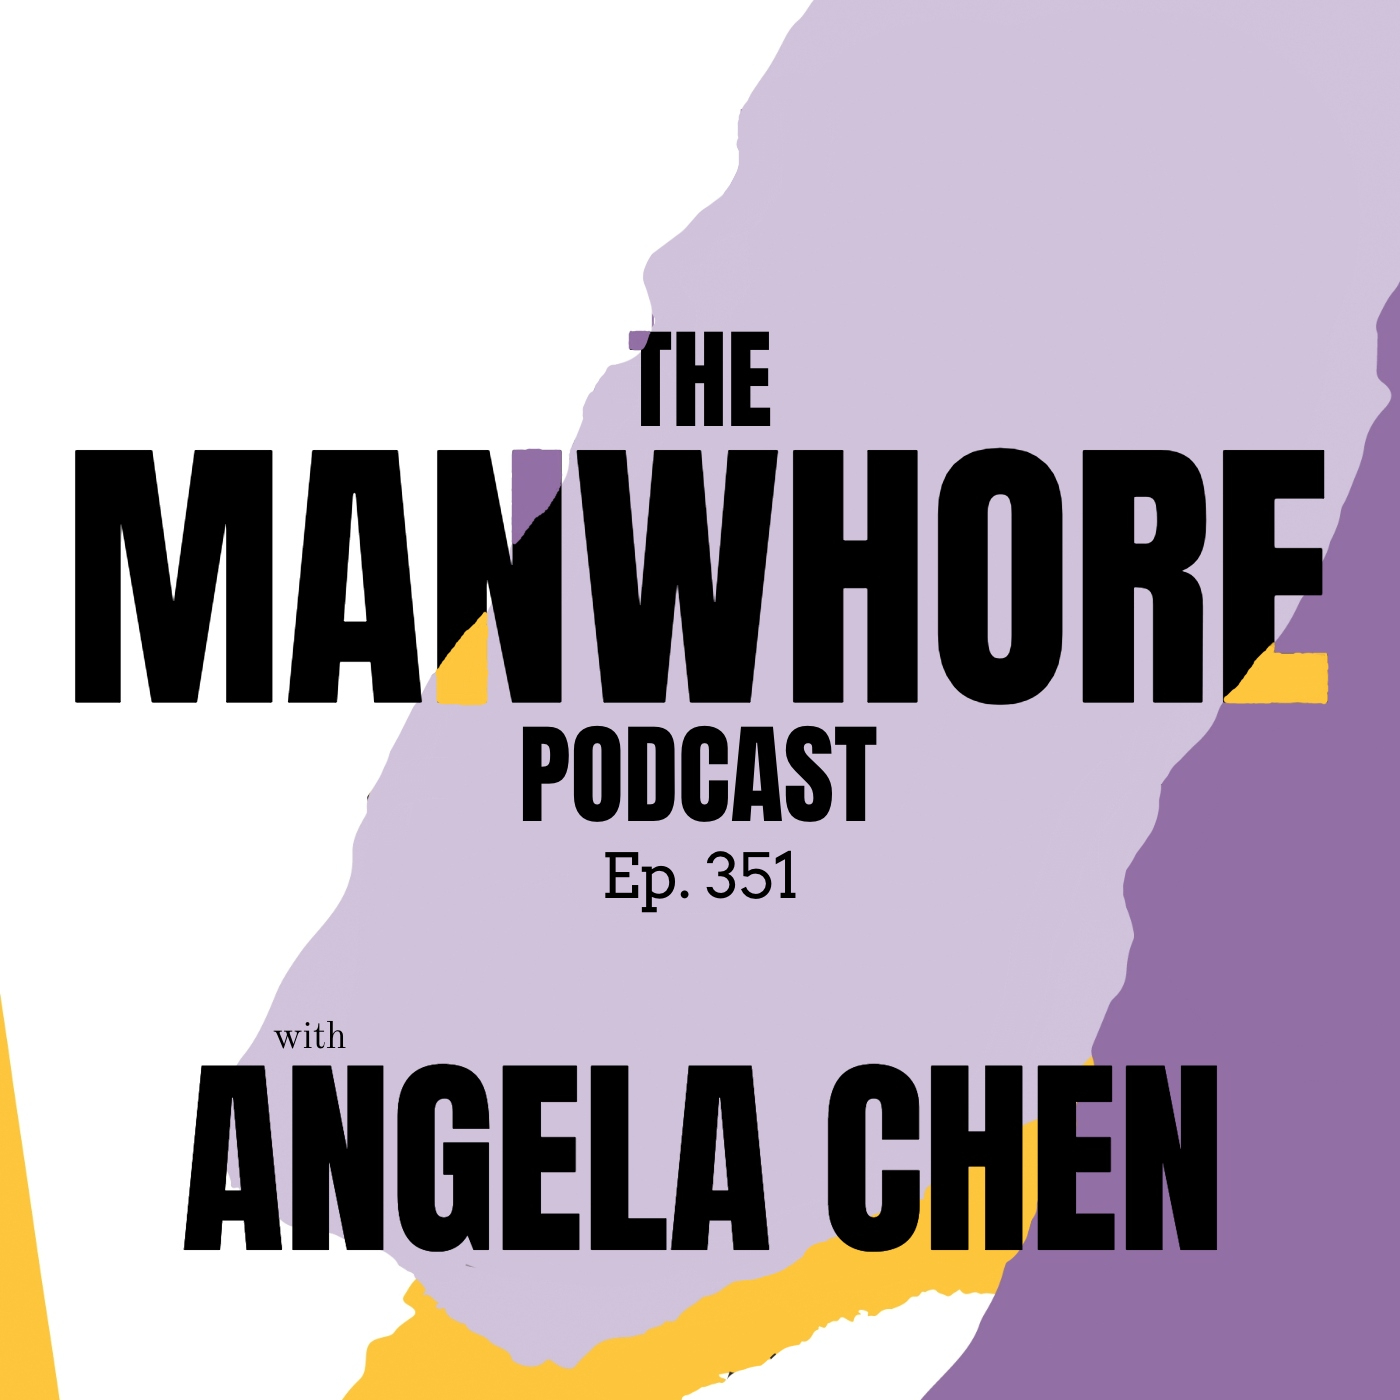 The Manwhore Podcast: A Sex-Positive Quest - Ep. 351: Why are you obsessed with asexual people's sex lives? (Angela Chen)